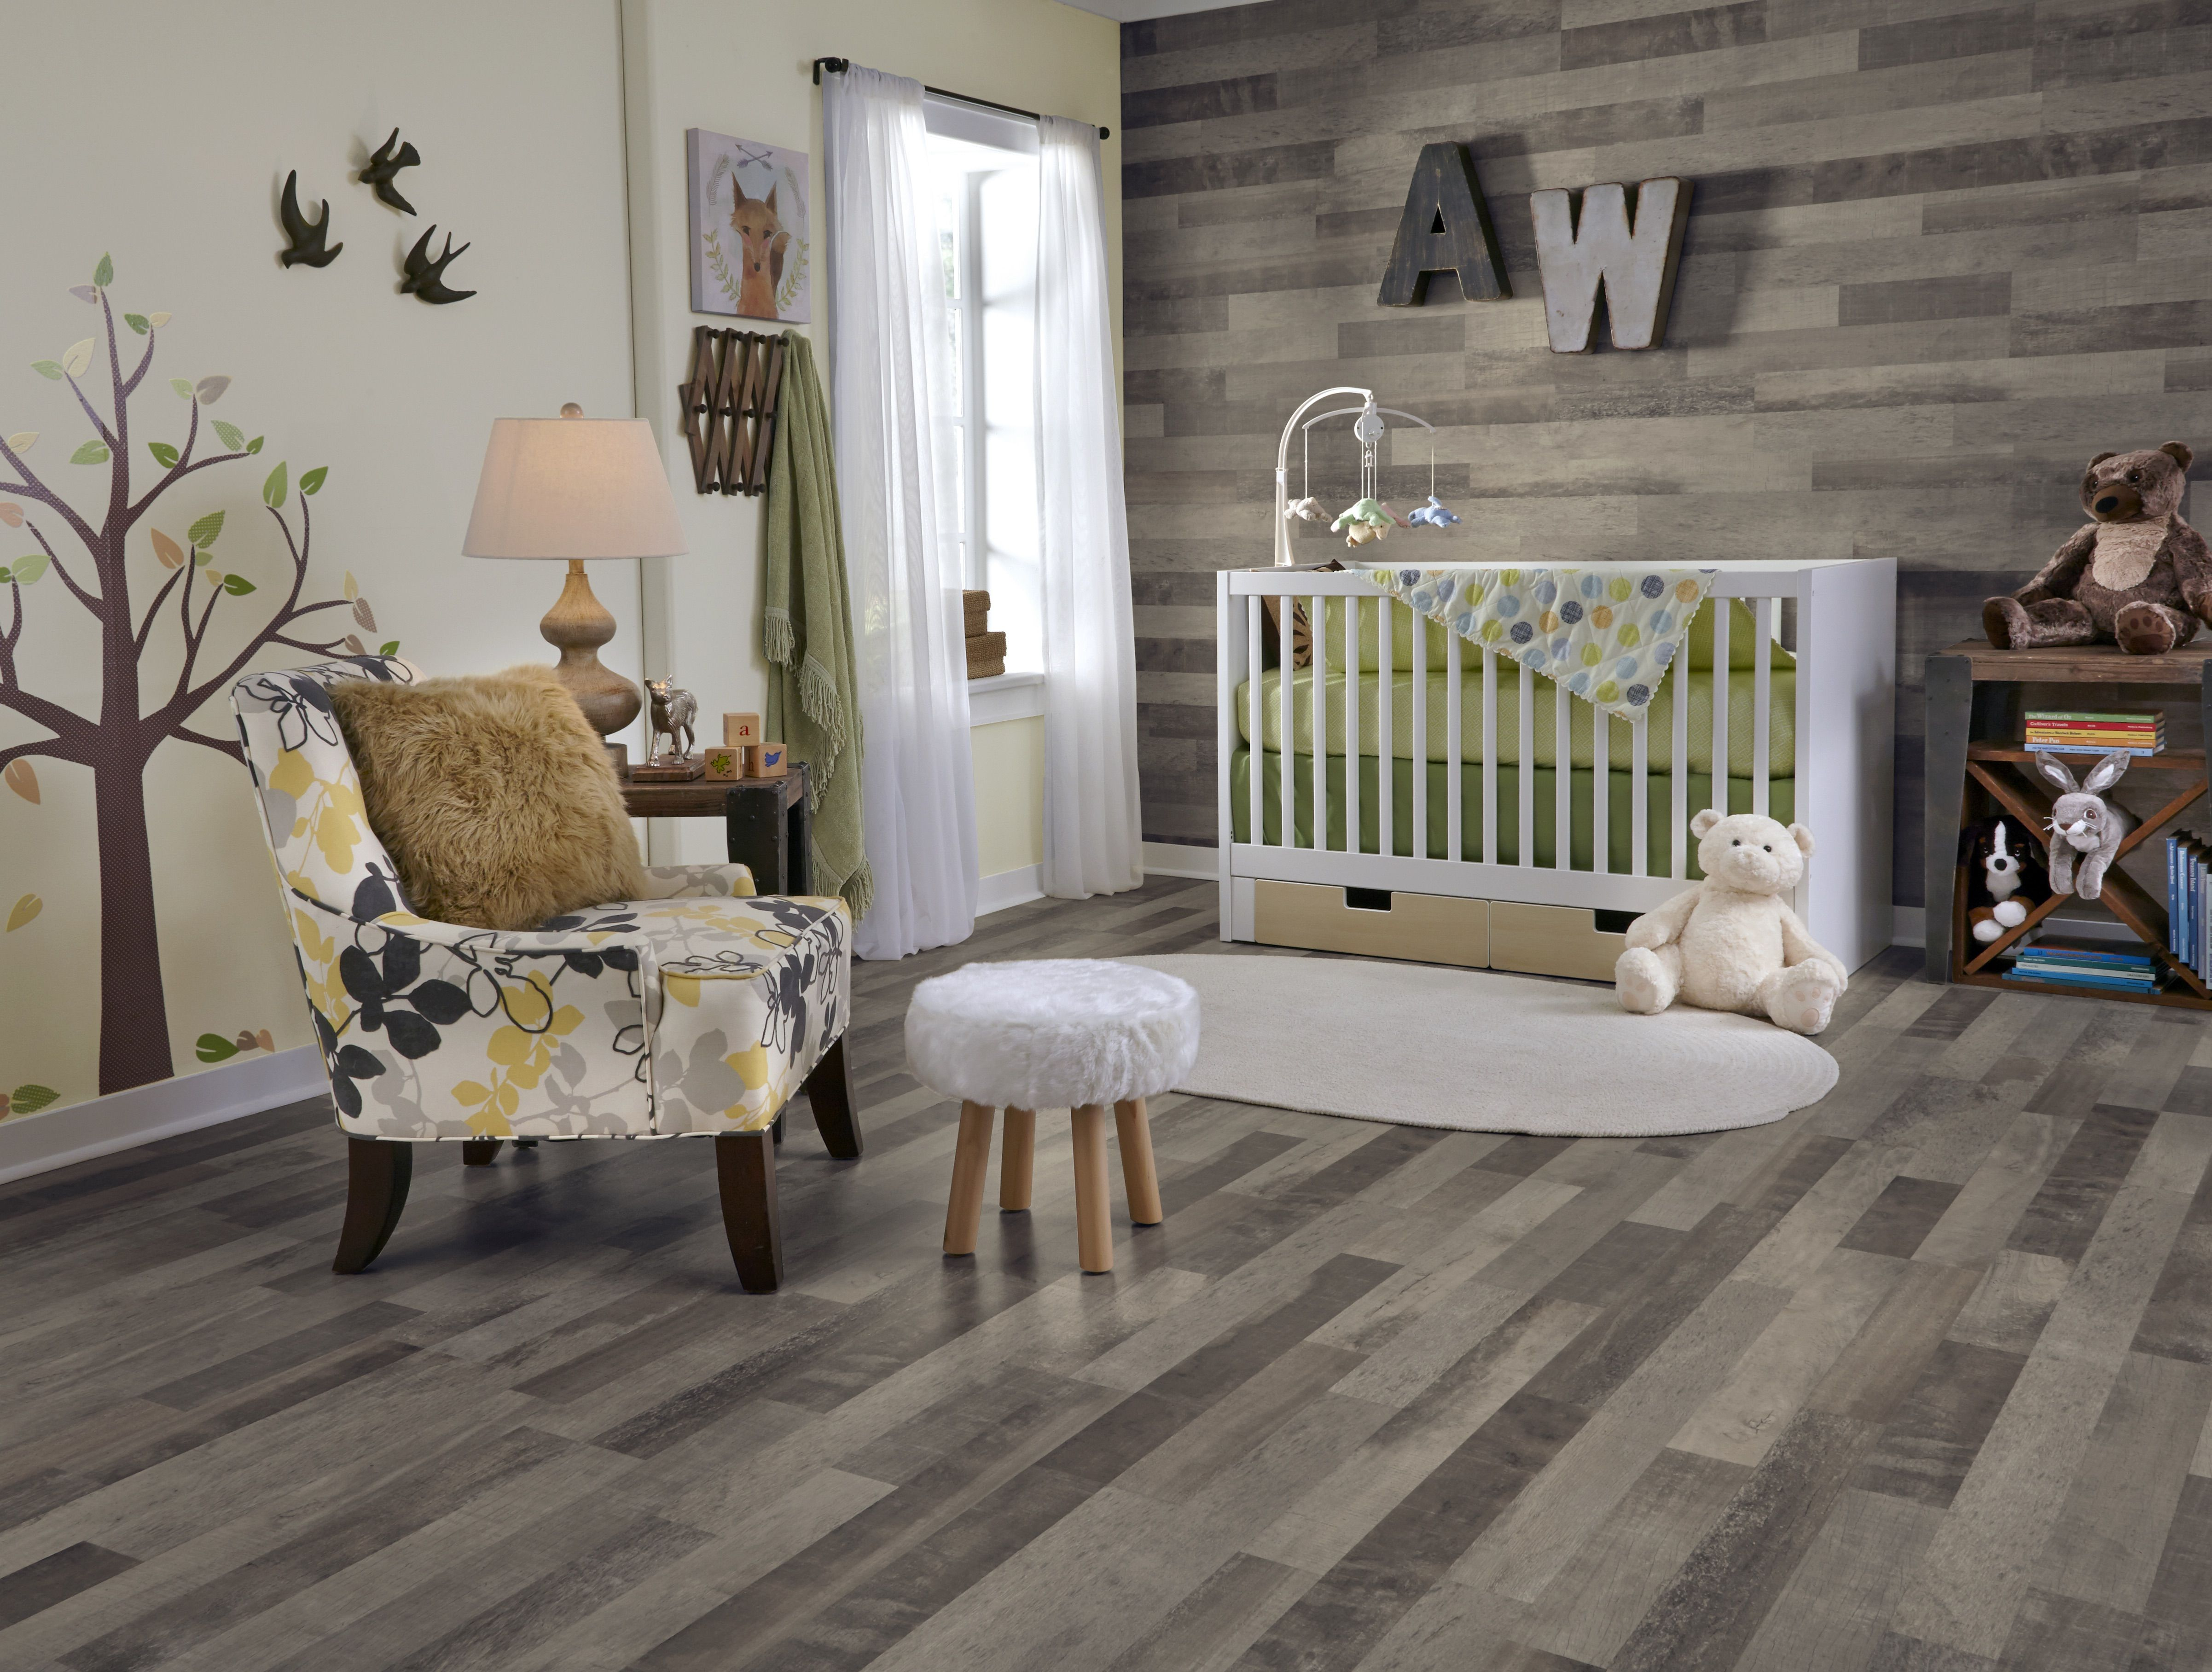 Laminate Flooring Is An Ideal Choice For Nurseries And Playrooms Since It S Waterproof Spillproof